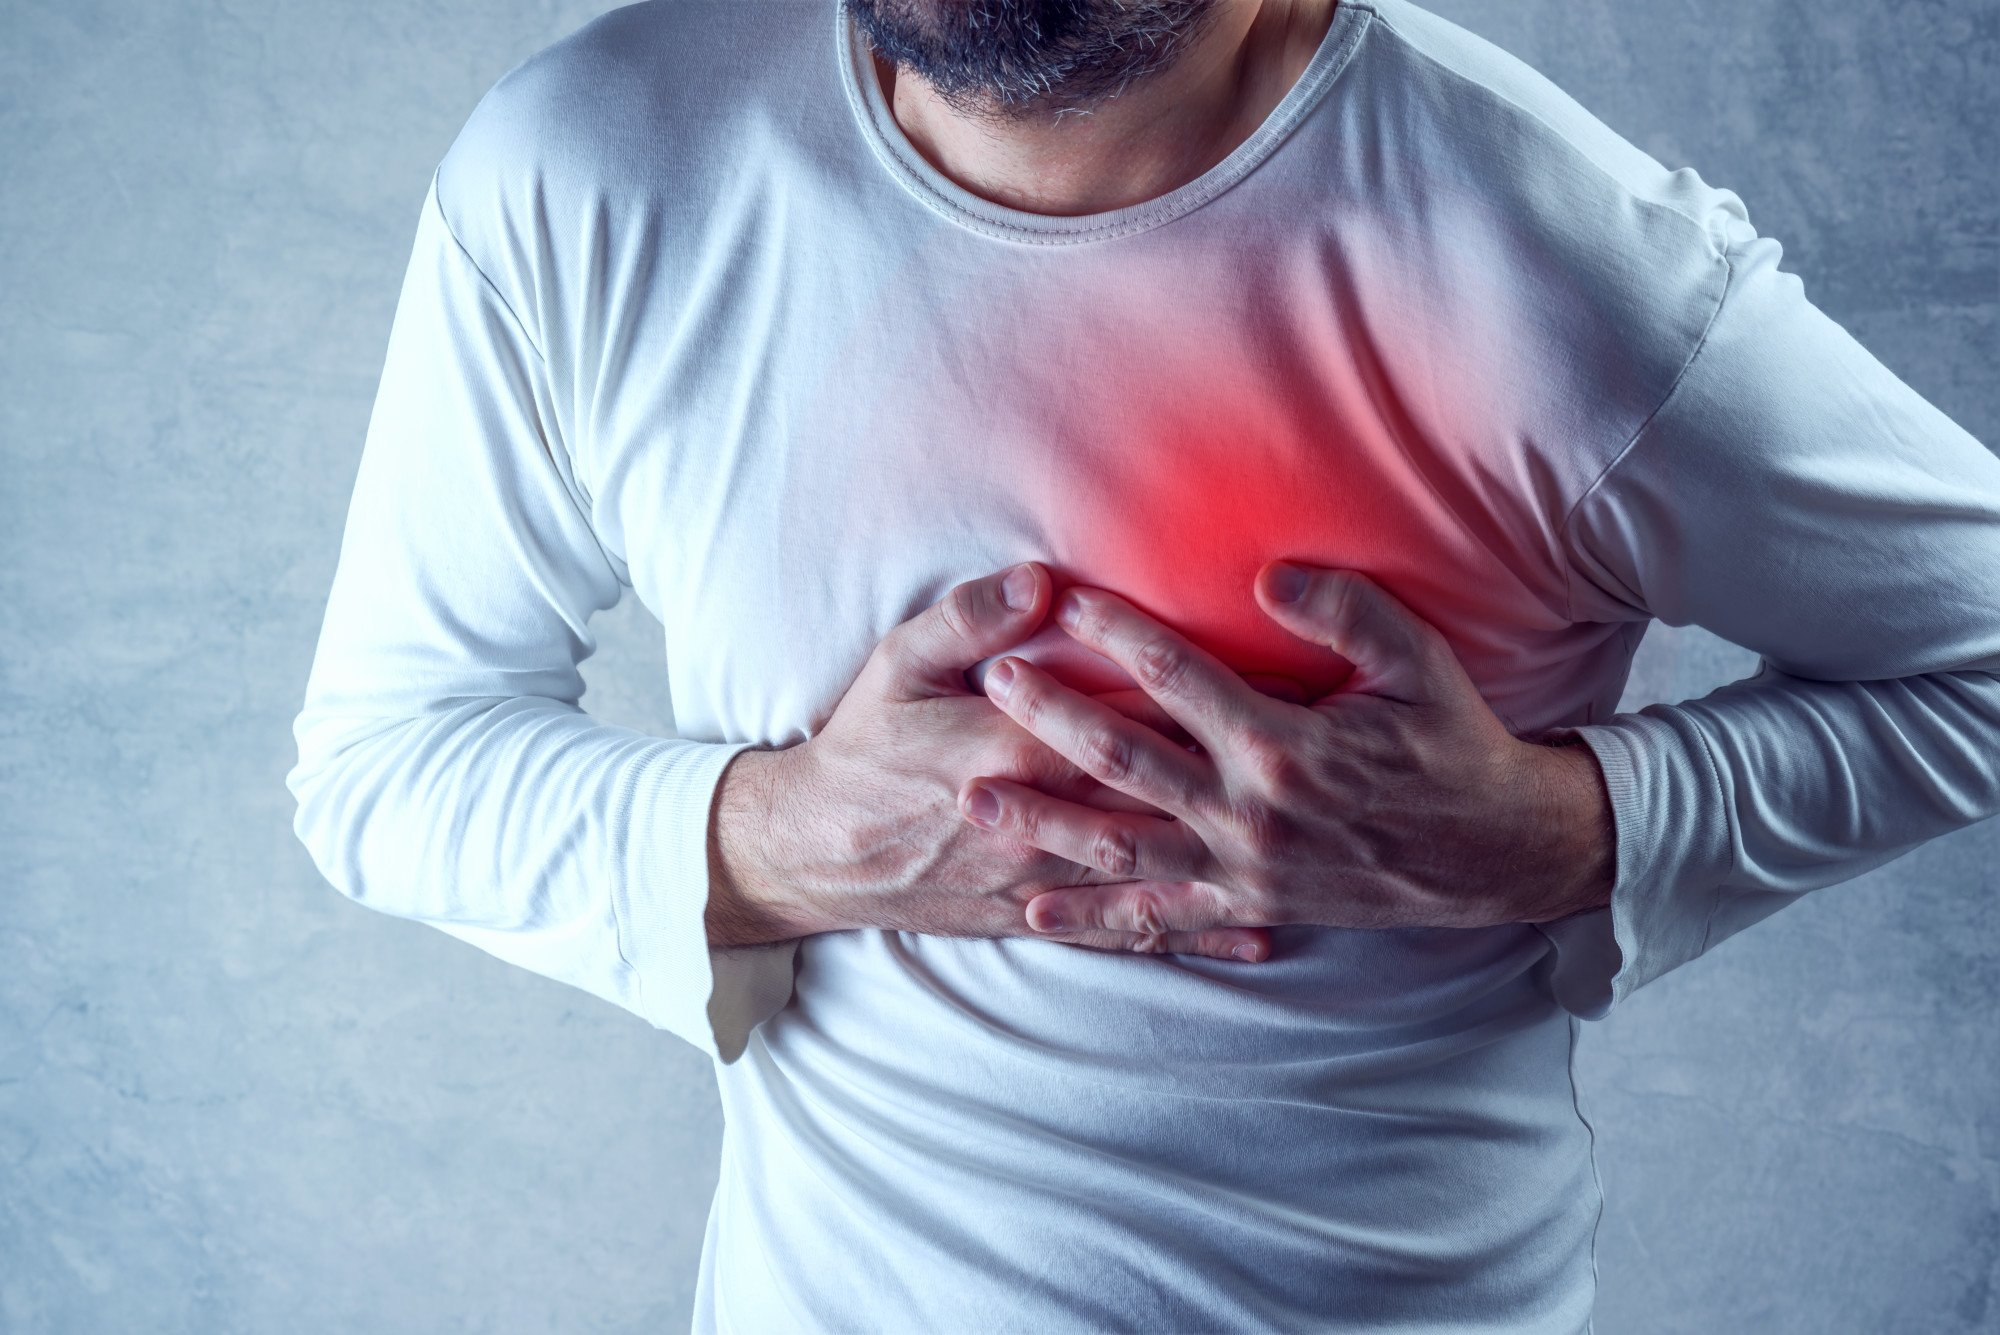 Signs of a heart attack: image of a man having chest pain